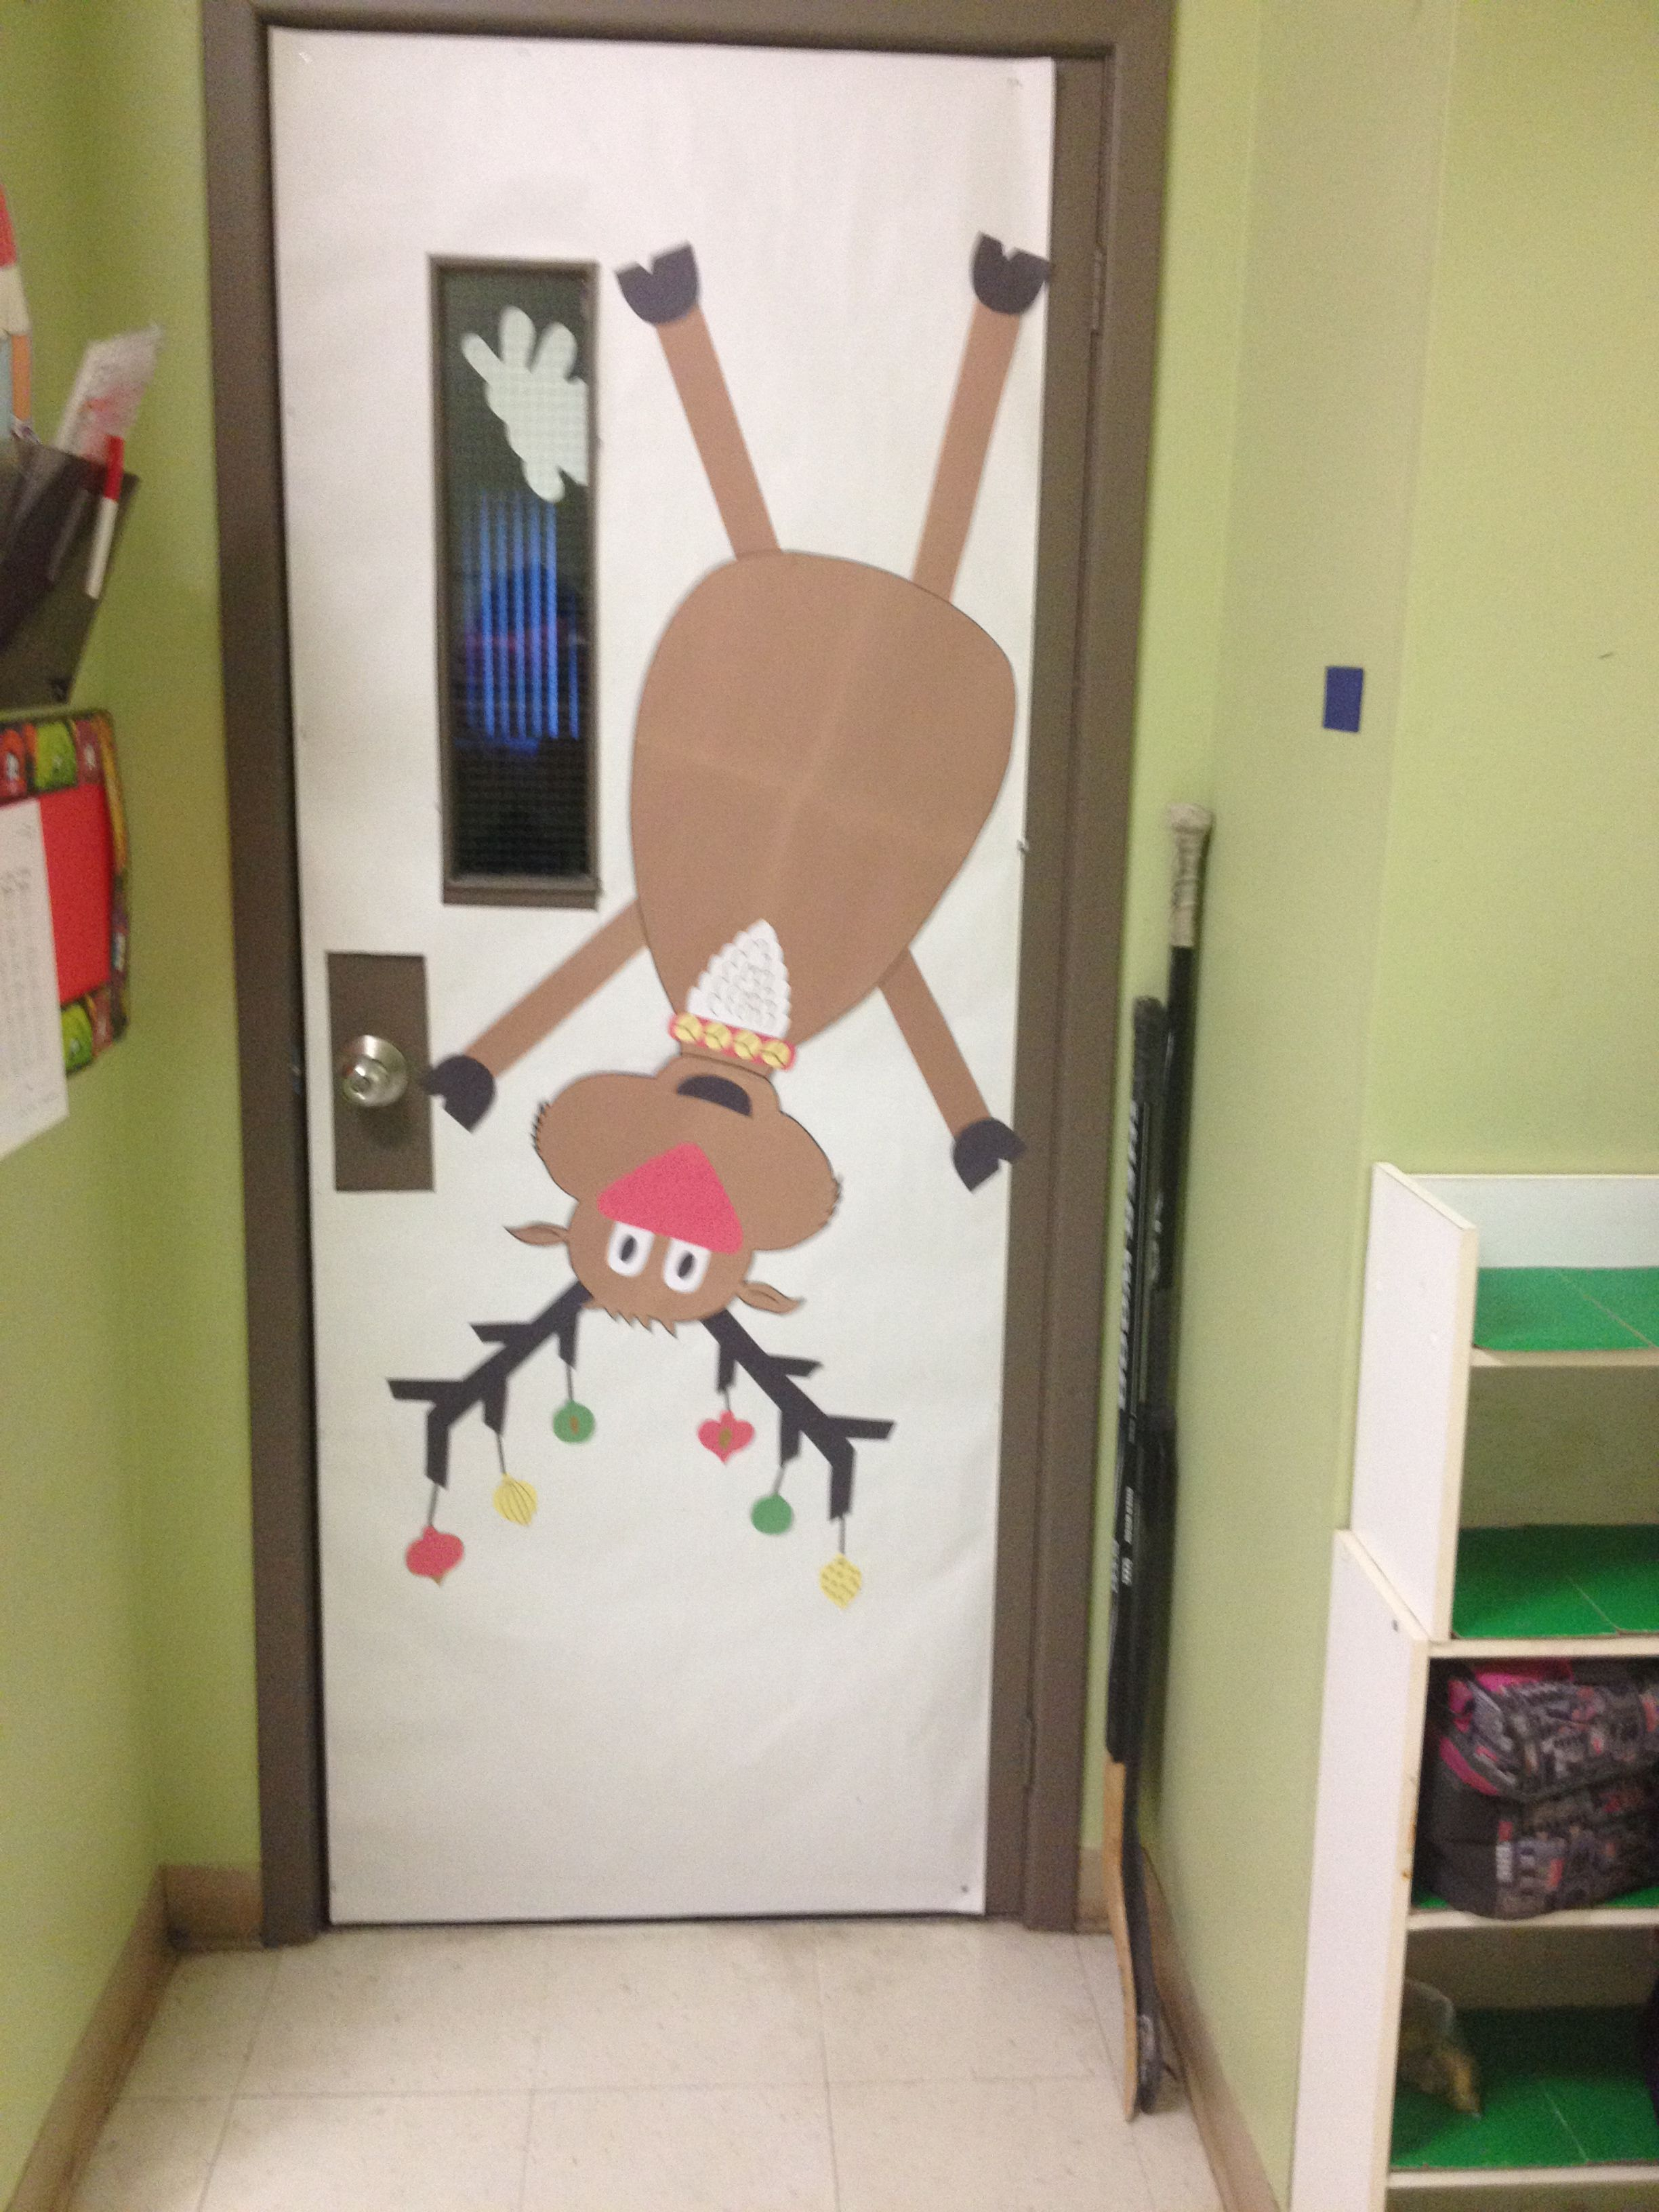 D coration de porte de classe projects to try for Decoration porte noel maternelle